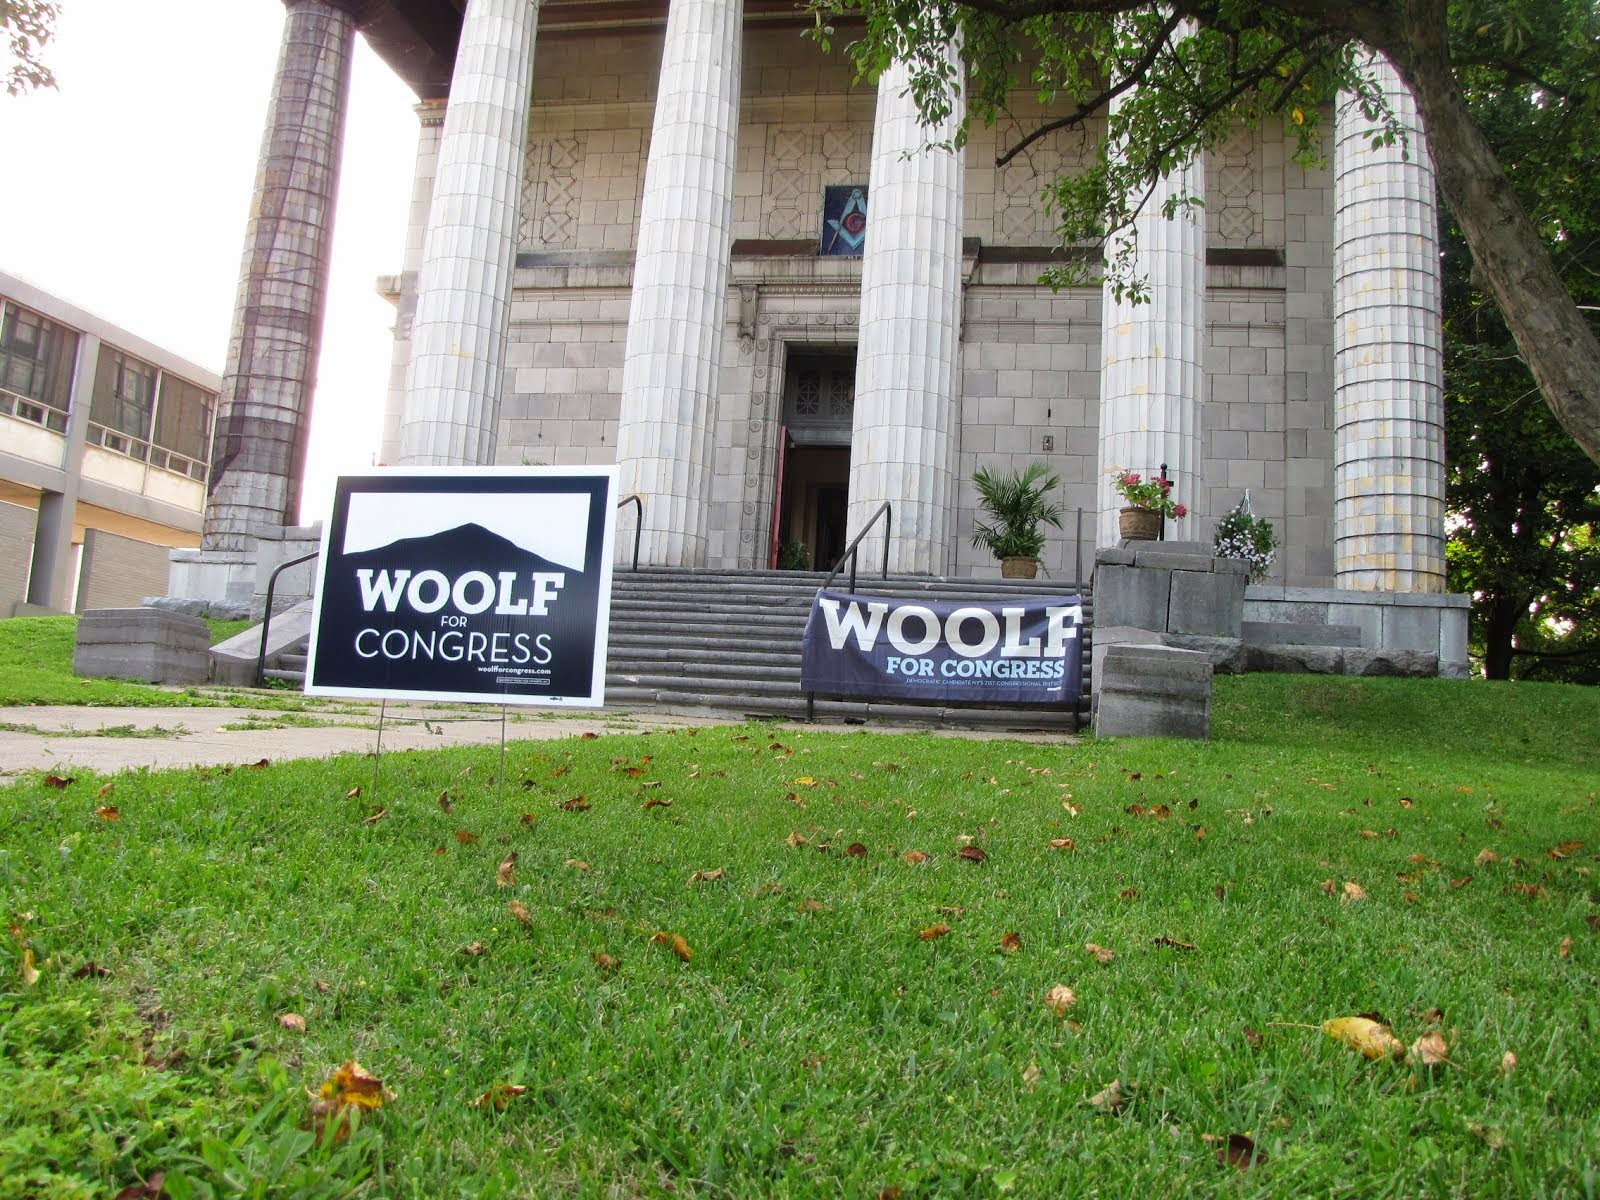 The Masonic Temple Became a Woolf's Den